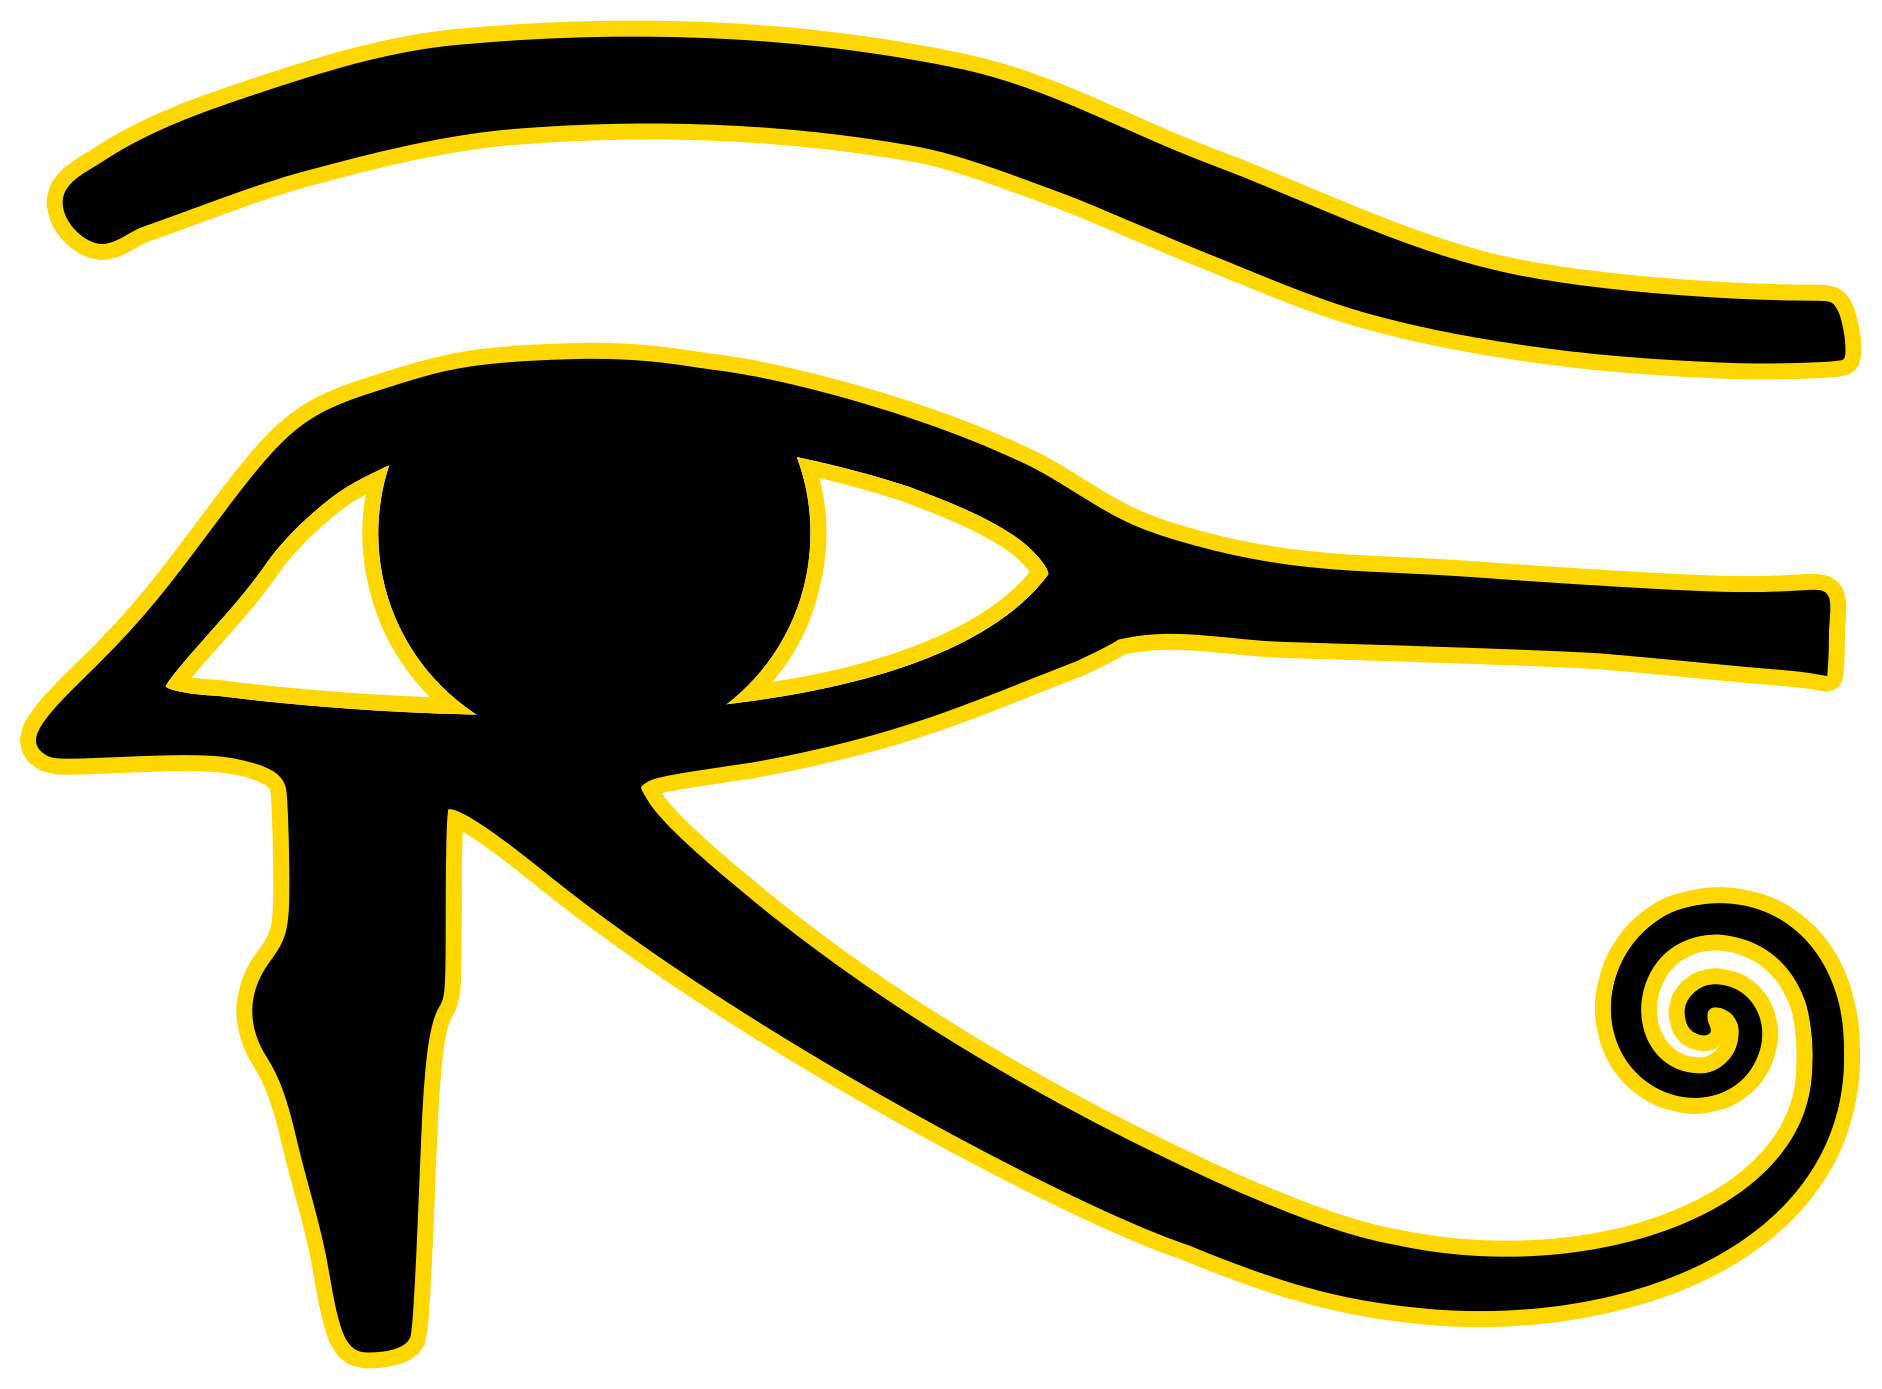 Eye of Horus - Left - I am using this in the most general sense of being a Pagan eye symbol. I love this symbol, and it appeared to me in golden laser light with my eyes closed after a particularly dramatic lucid dream. So I use with respect for whoever sent me that symbol.  Their technology is way over my head.